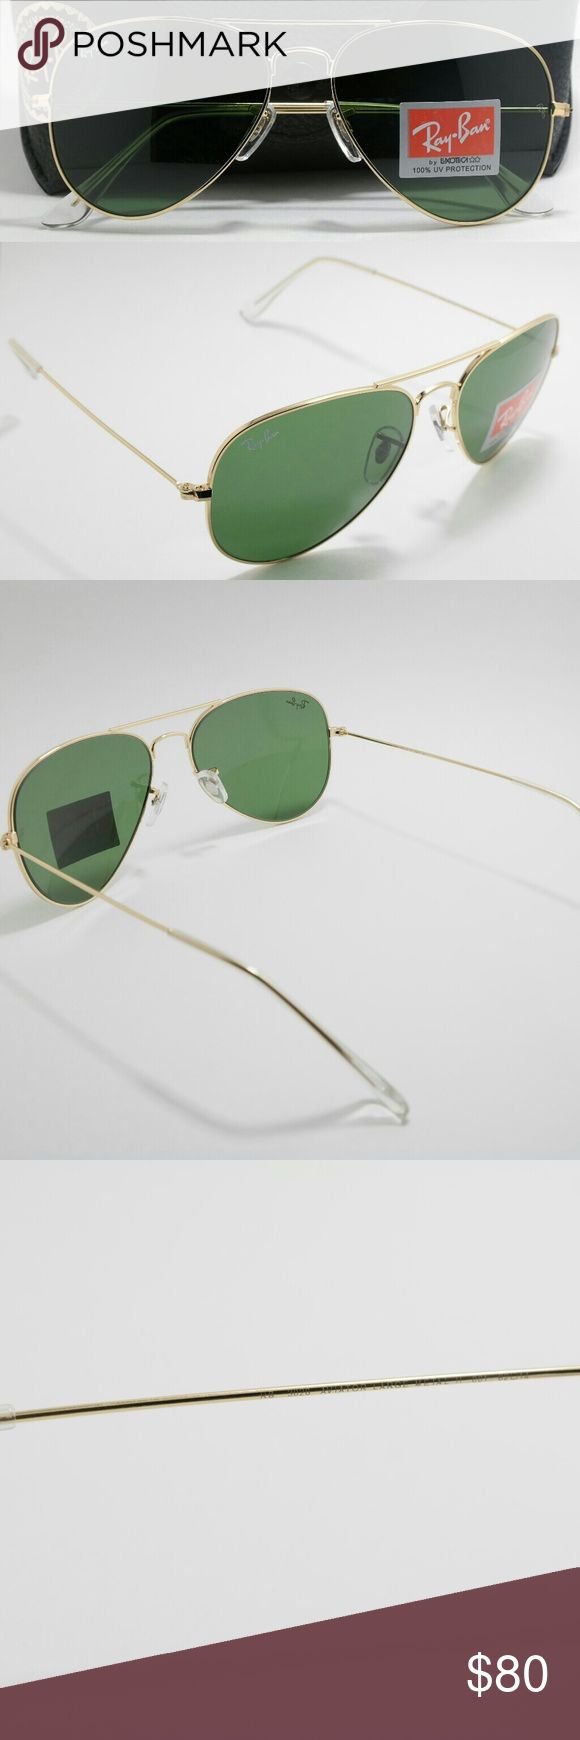 NWT classic gold RB3025 Ray Ban Aviator 62m Brand new Aviator RB3025 Ray Ban sunglasses. With classic gold frame and 62mm G-15 lenses. These sunglasses are unisex and look good on both women and men. Comes with cleaning cloth, case, and box. Asking $80 pr http://www.allthingsvogue.com